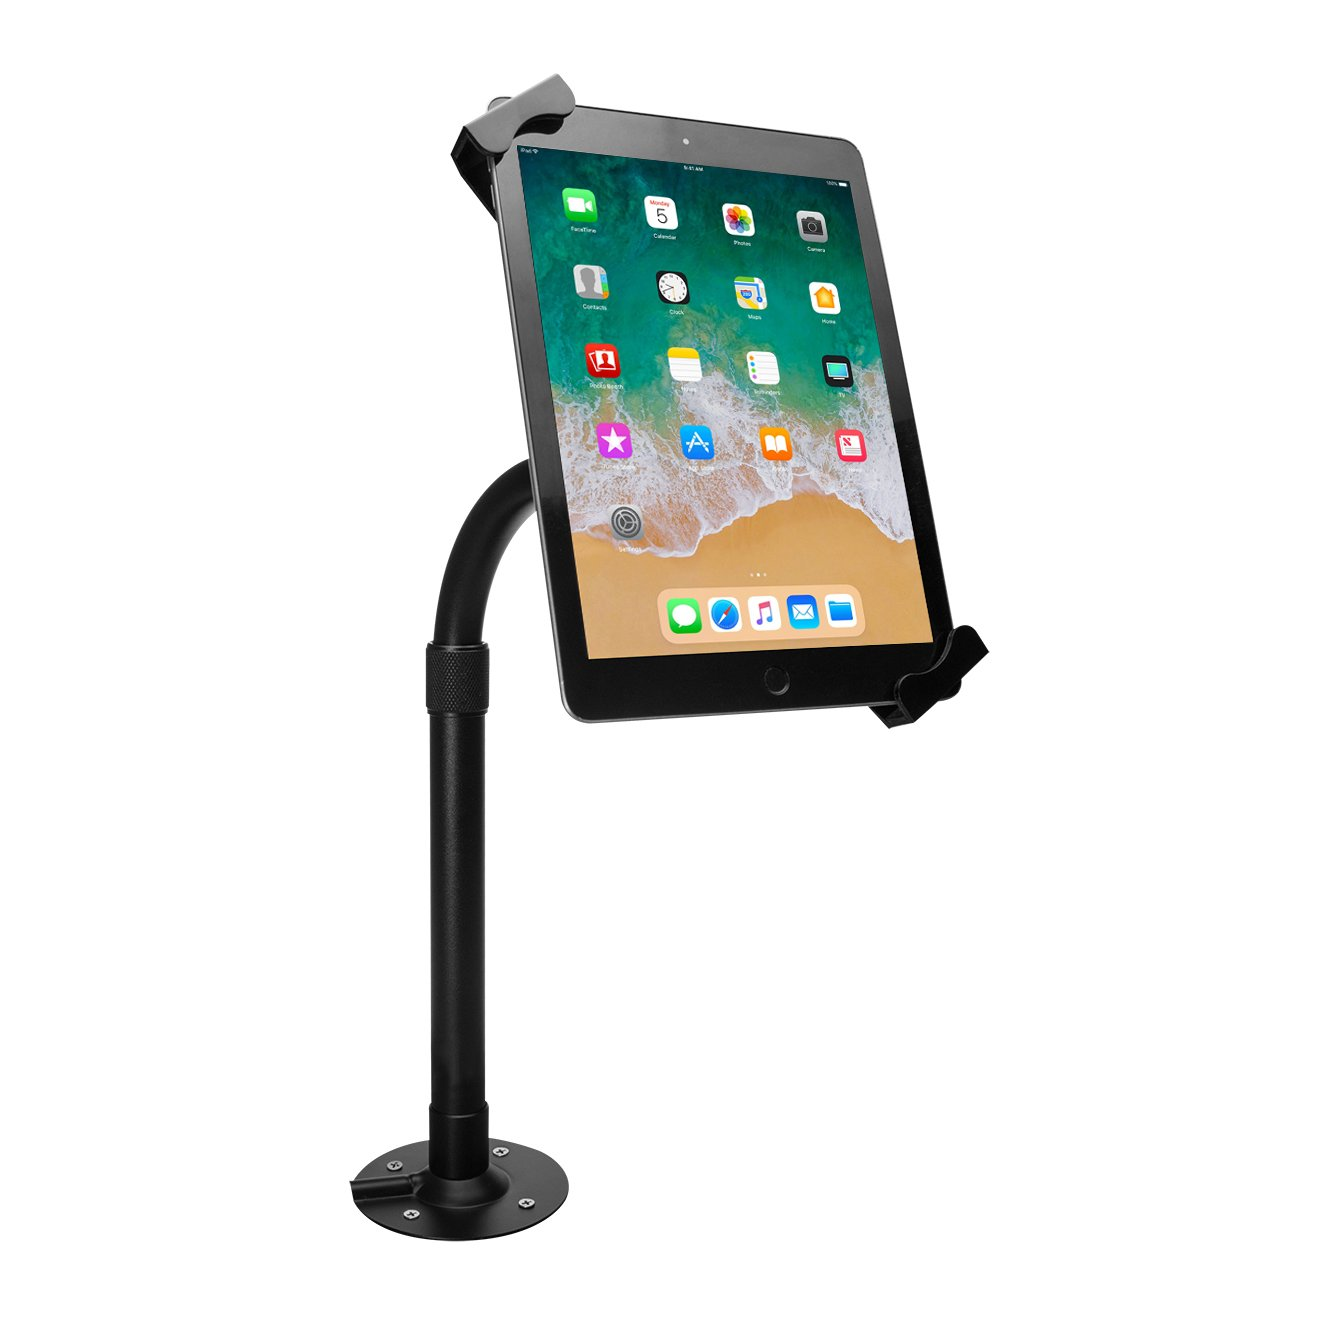 """Tablet Stand, CTA Digital Height-Adjustable Tabletop Security Elbow Mount for 7-14"""" Tablets, fits iPad 10.2-inch (7th Gen.), iPad Air 3, 12.9-inch iPad Pro, 11-inch iPad Pro, iPad Gen 6 & More"""